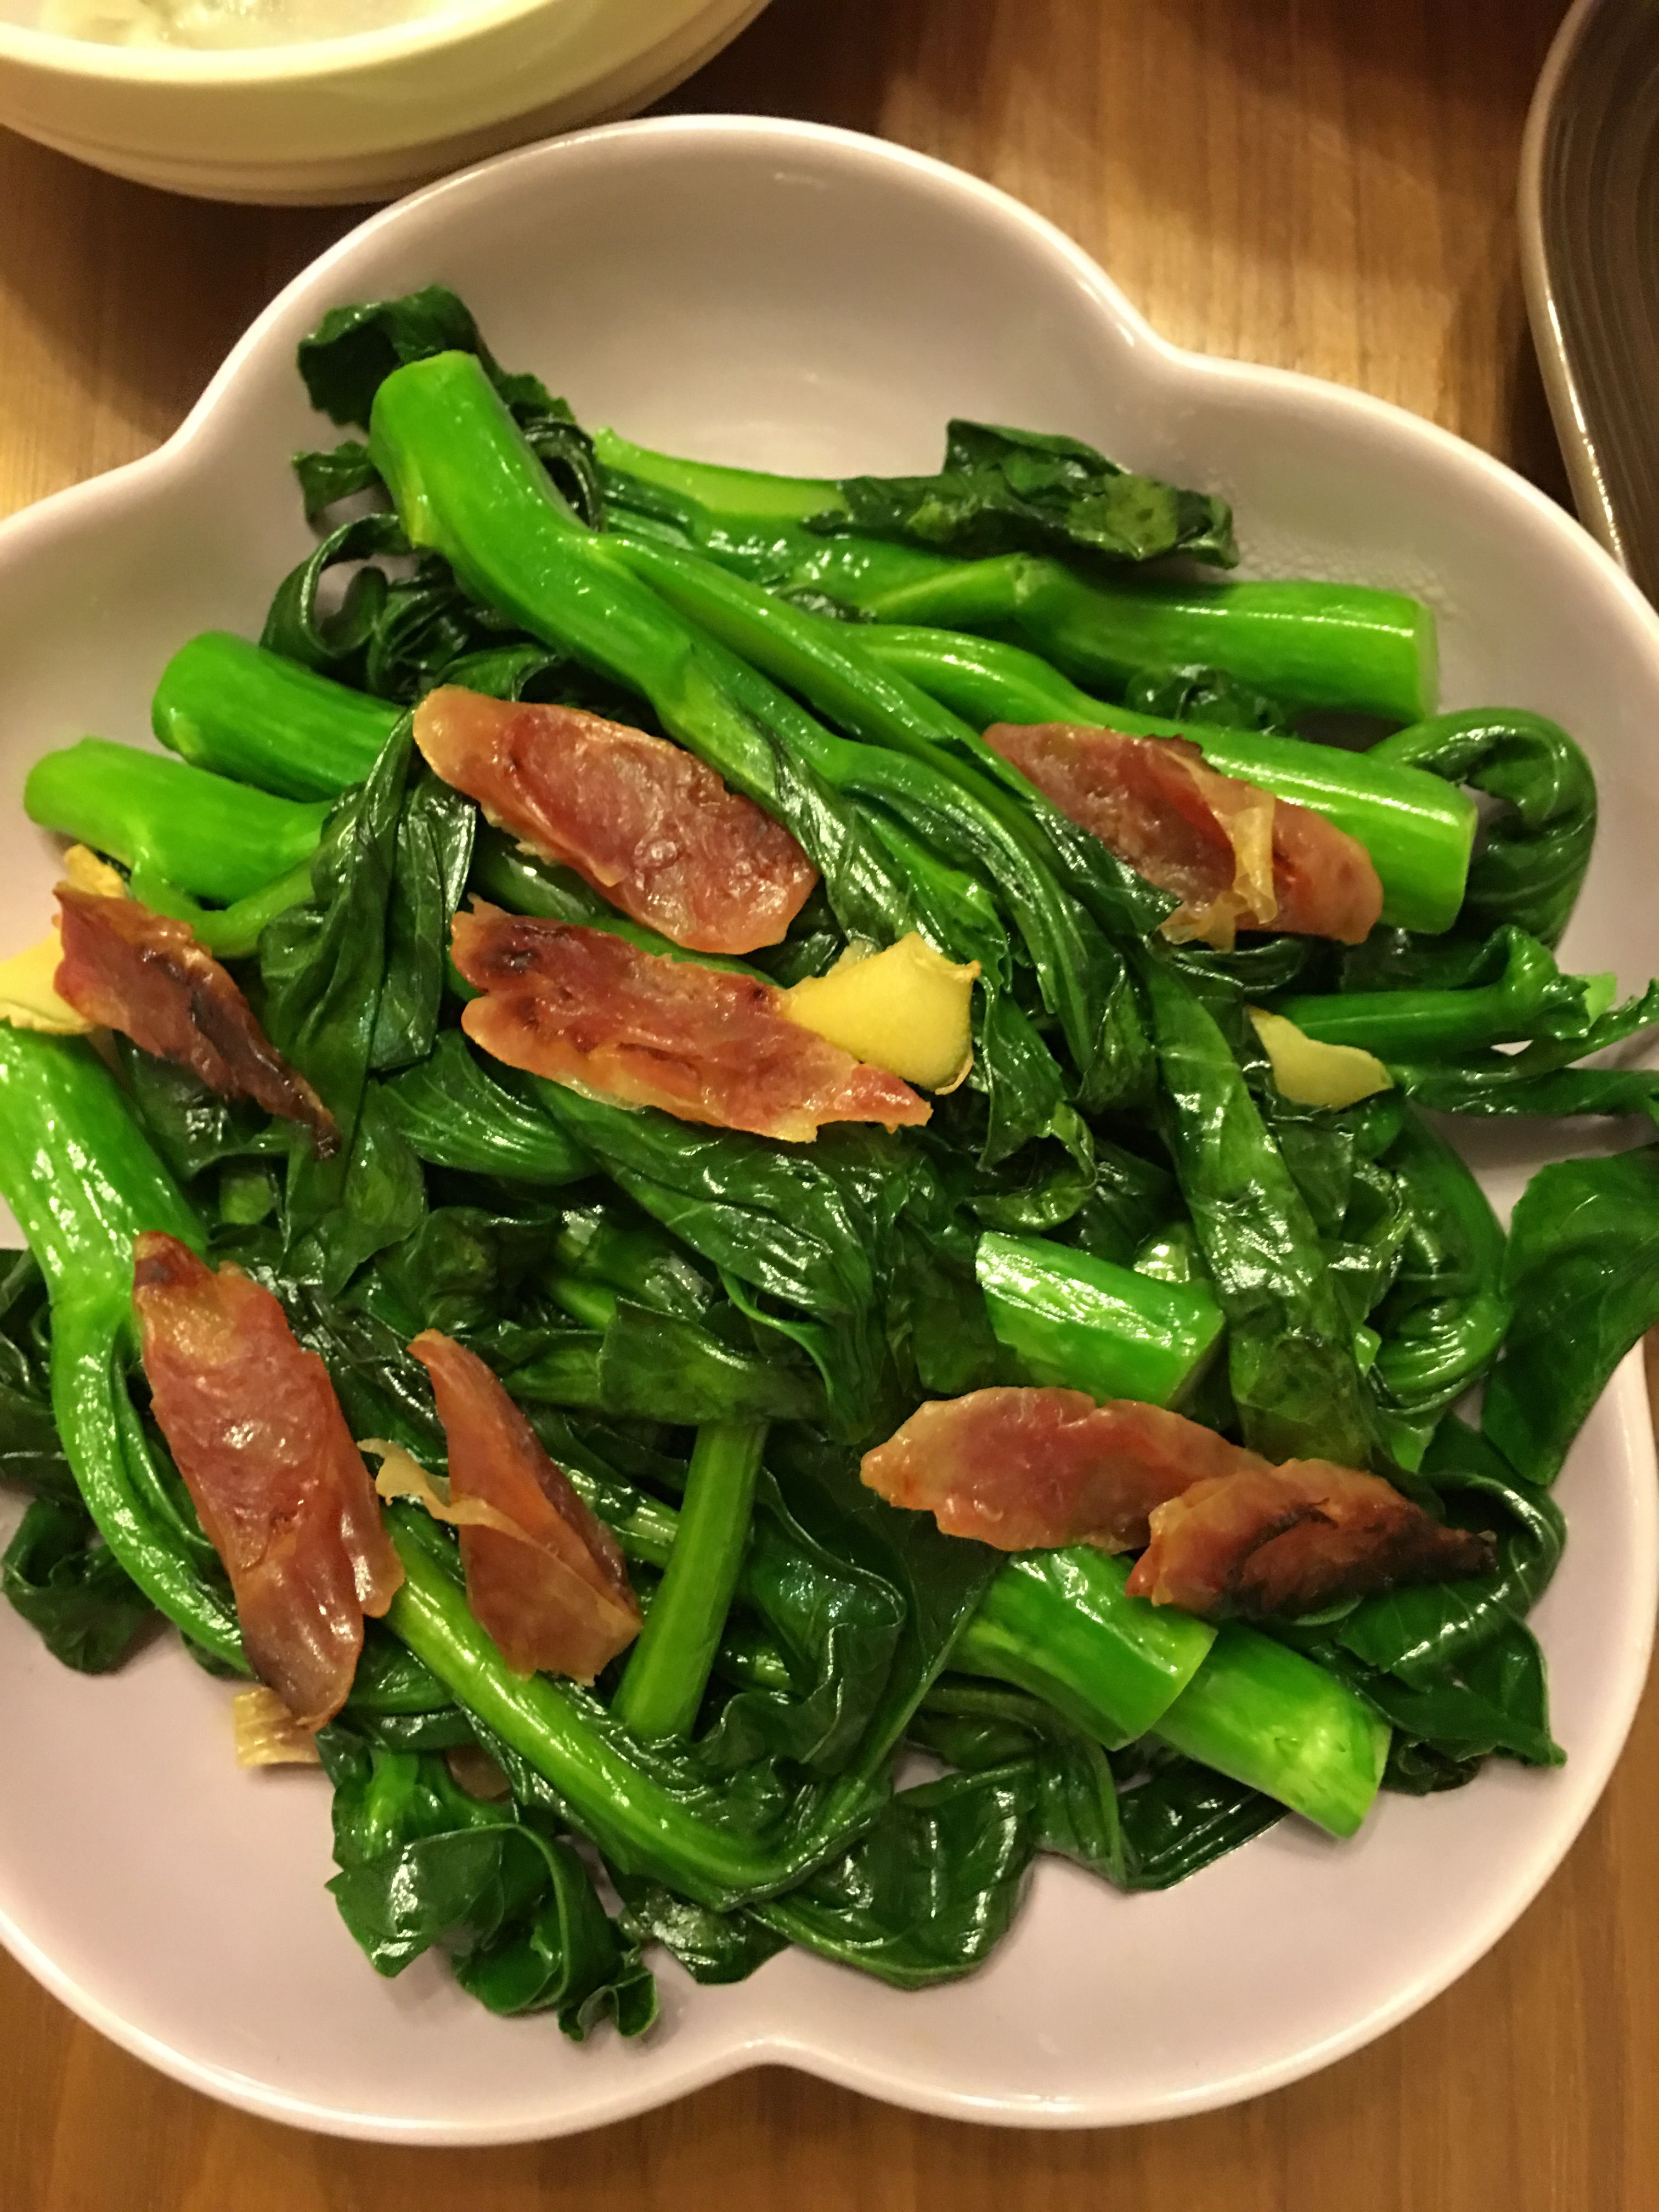 Pin by Kammy on Cooking   Ethnic recipes, Seaweed salad, Food